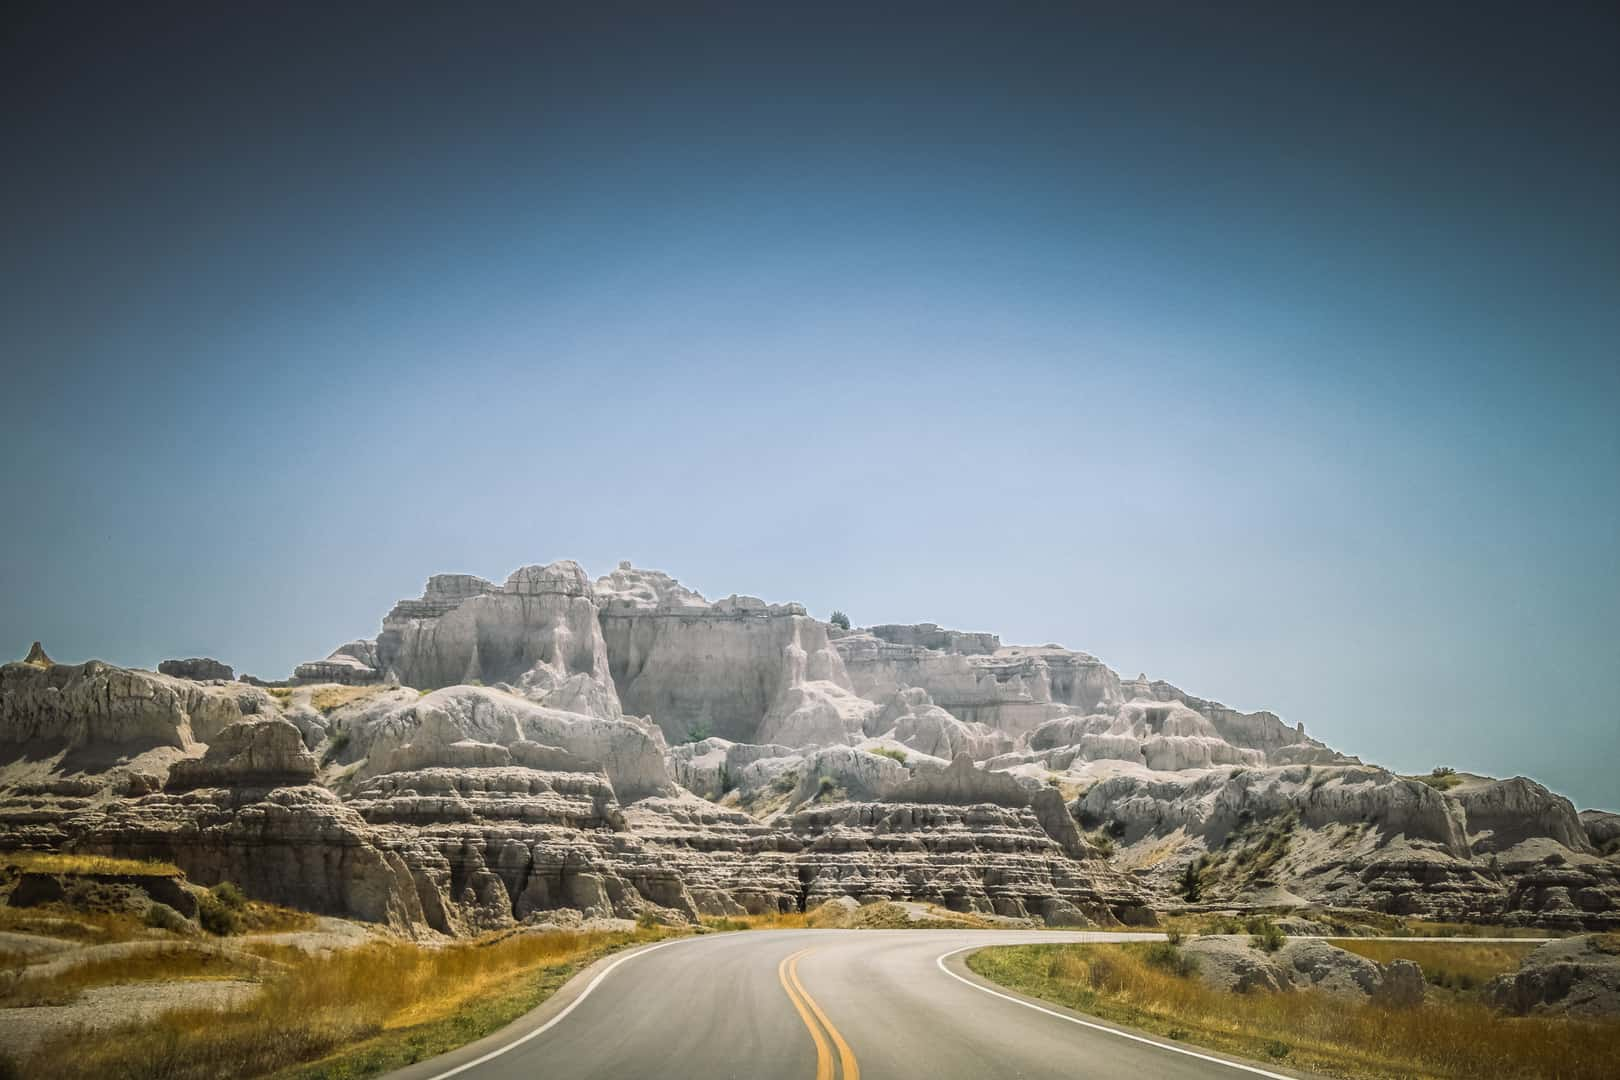 Badlands Loop Road view of the wall formation in Badlands National Park in South Dakota